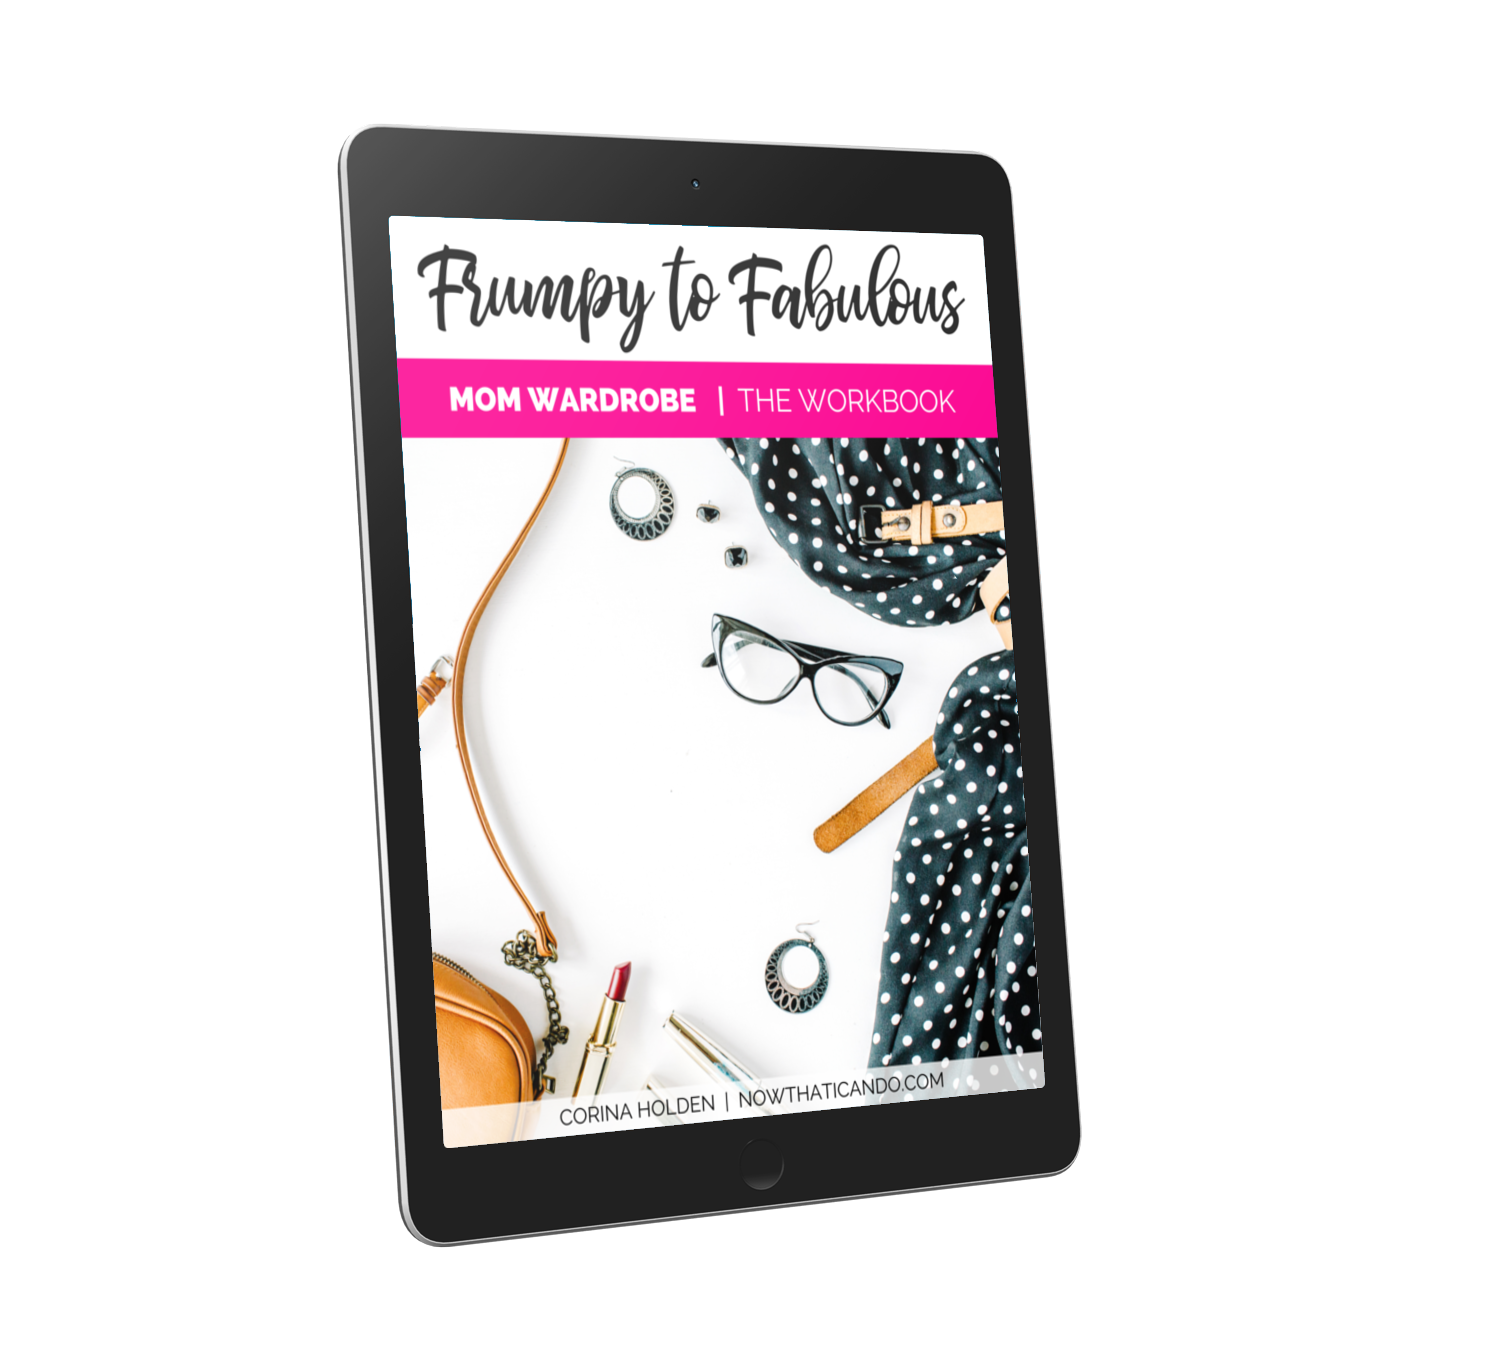 Frumpy-to-Fabulous-Workbook-Cover-Thin-Model